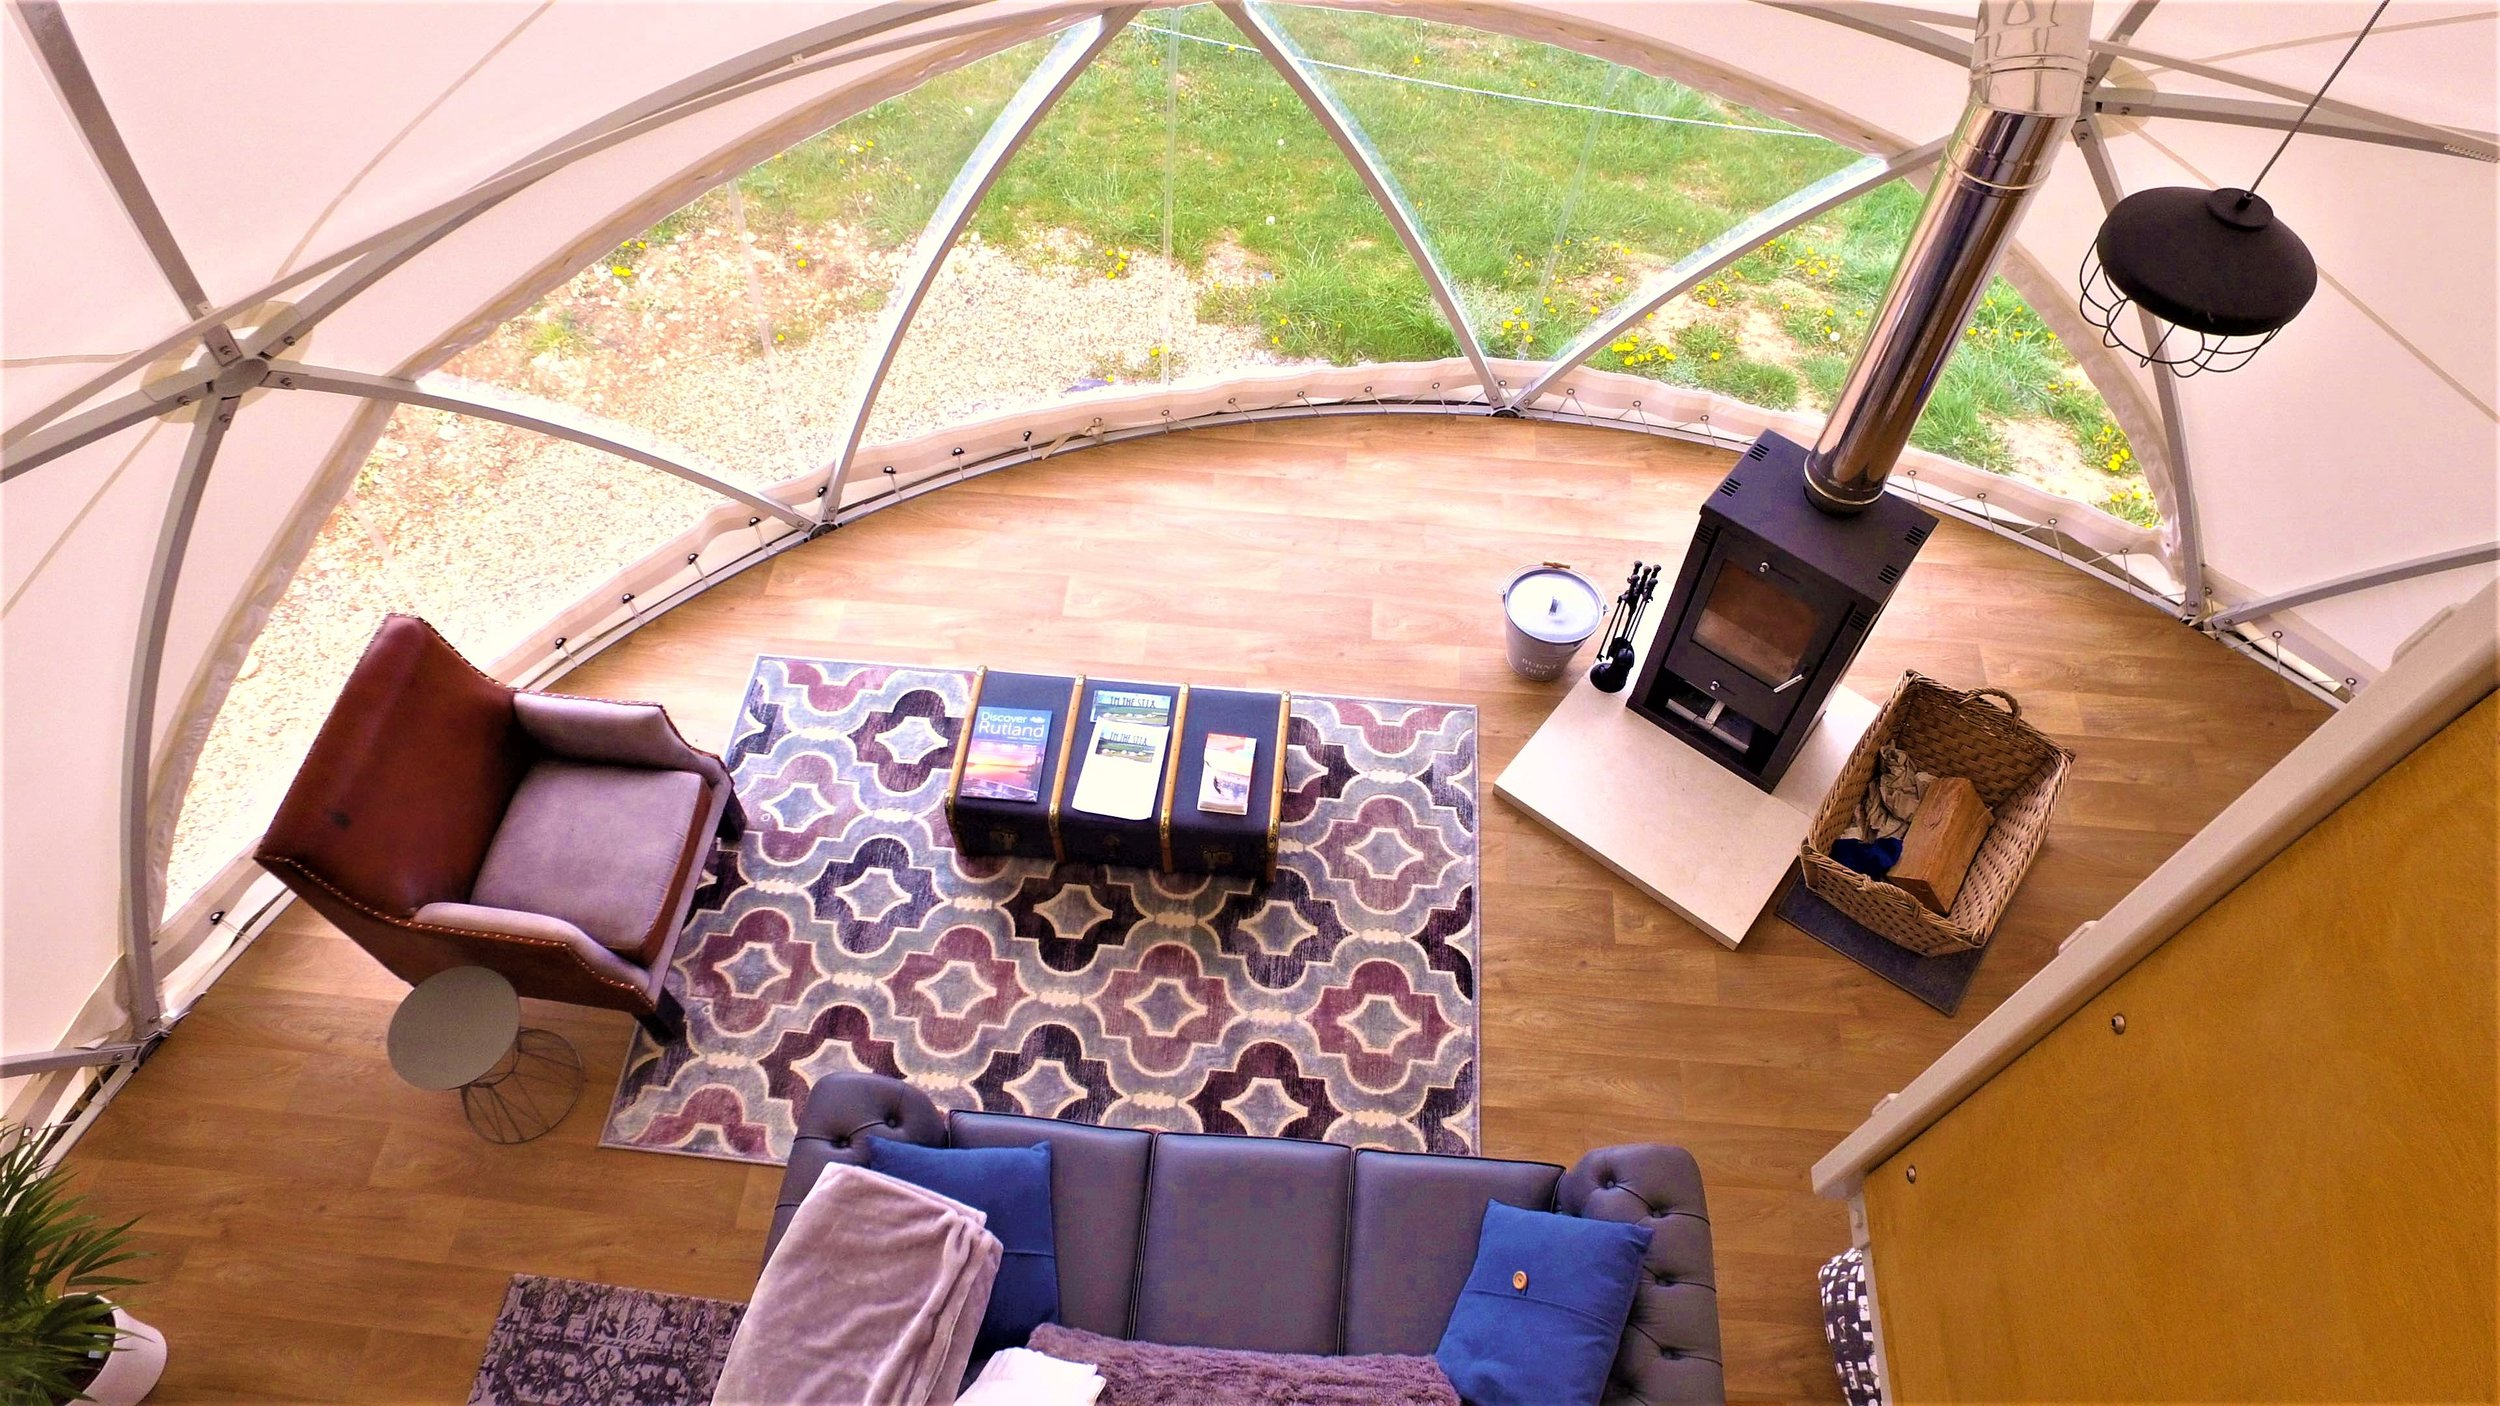 Luxury glamping - - The Rural Travel Guide